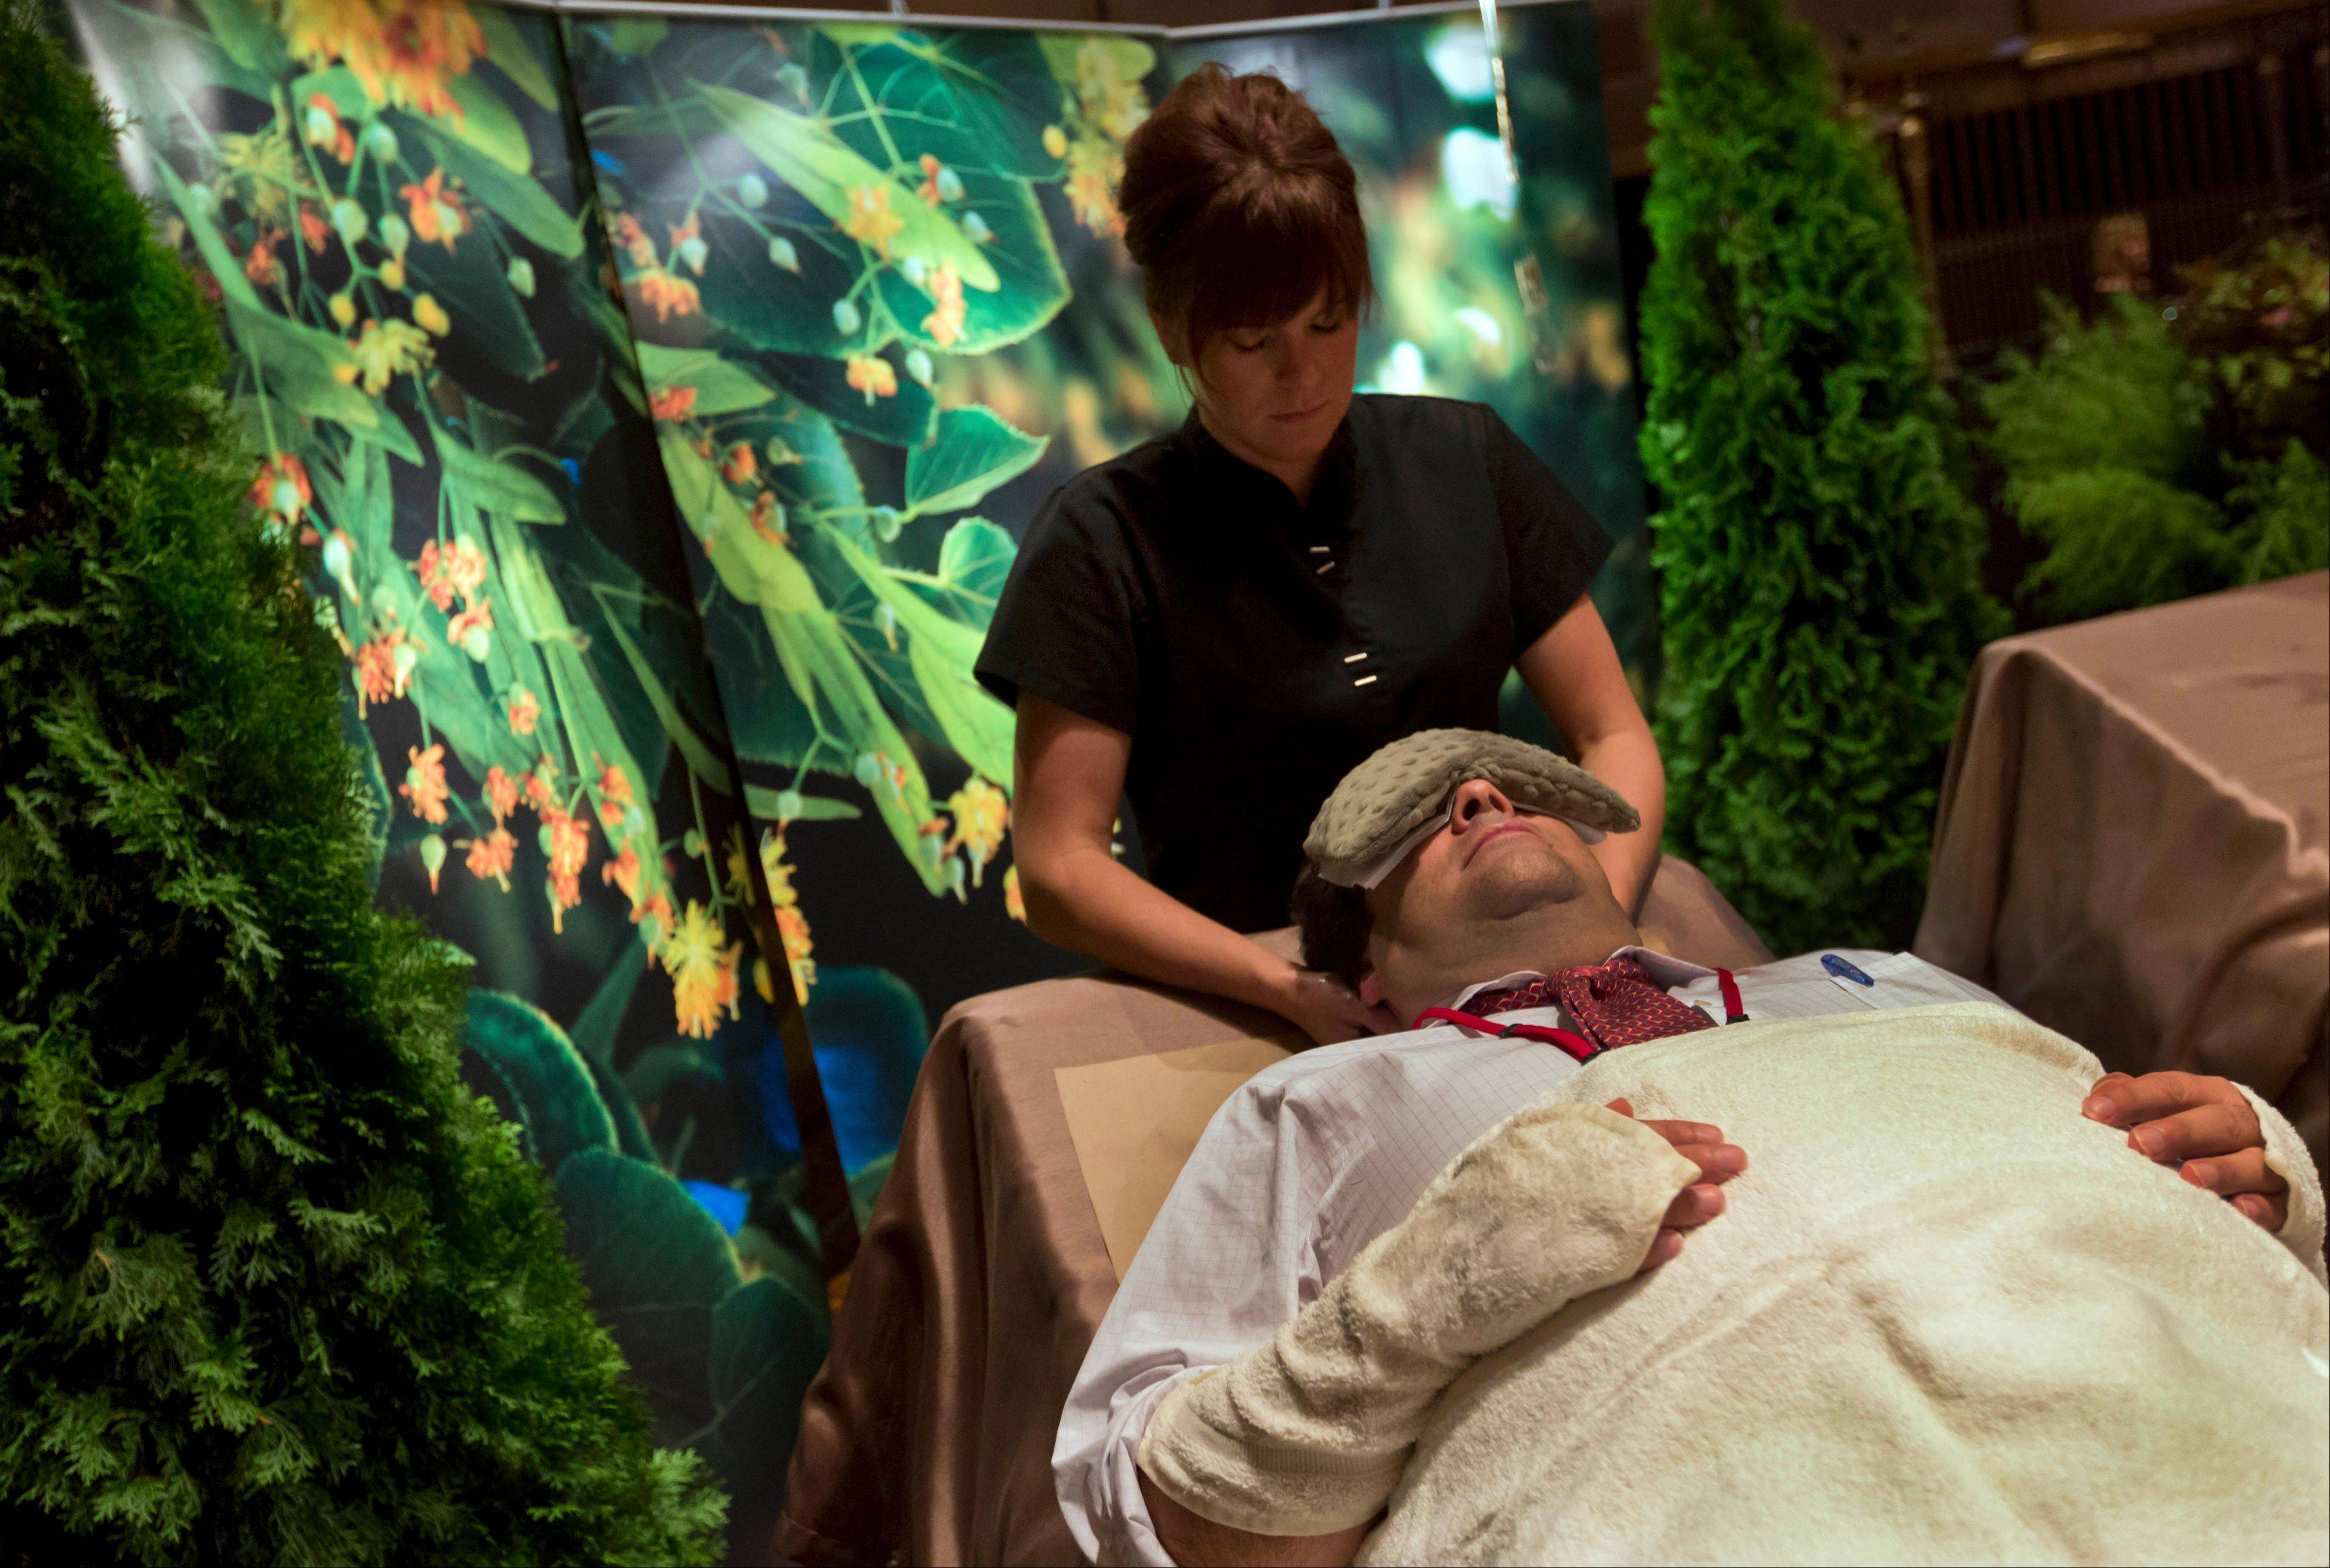 A man receives a Trilogy of Linden treatment from Brooke Hess at the Aspira Spa at the Osthoff Resort in Elkhart Lake, Wis.